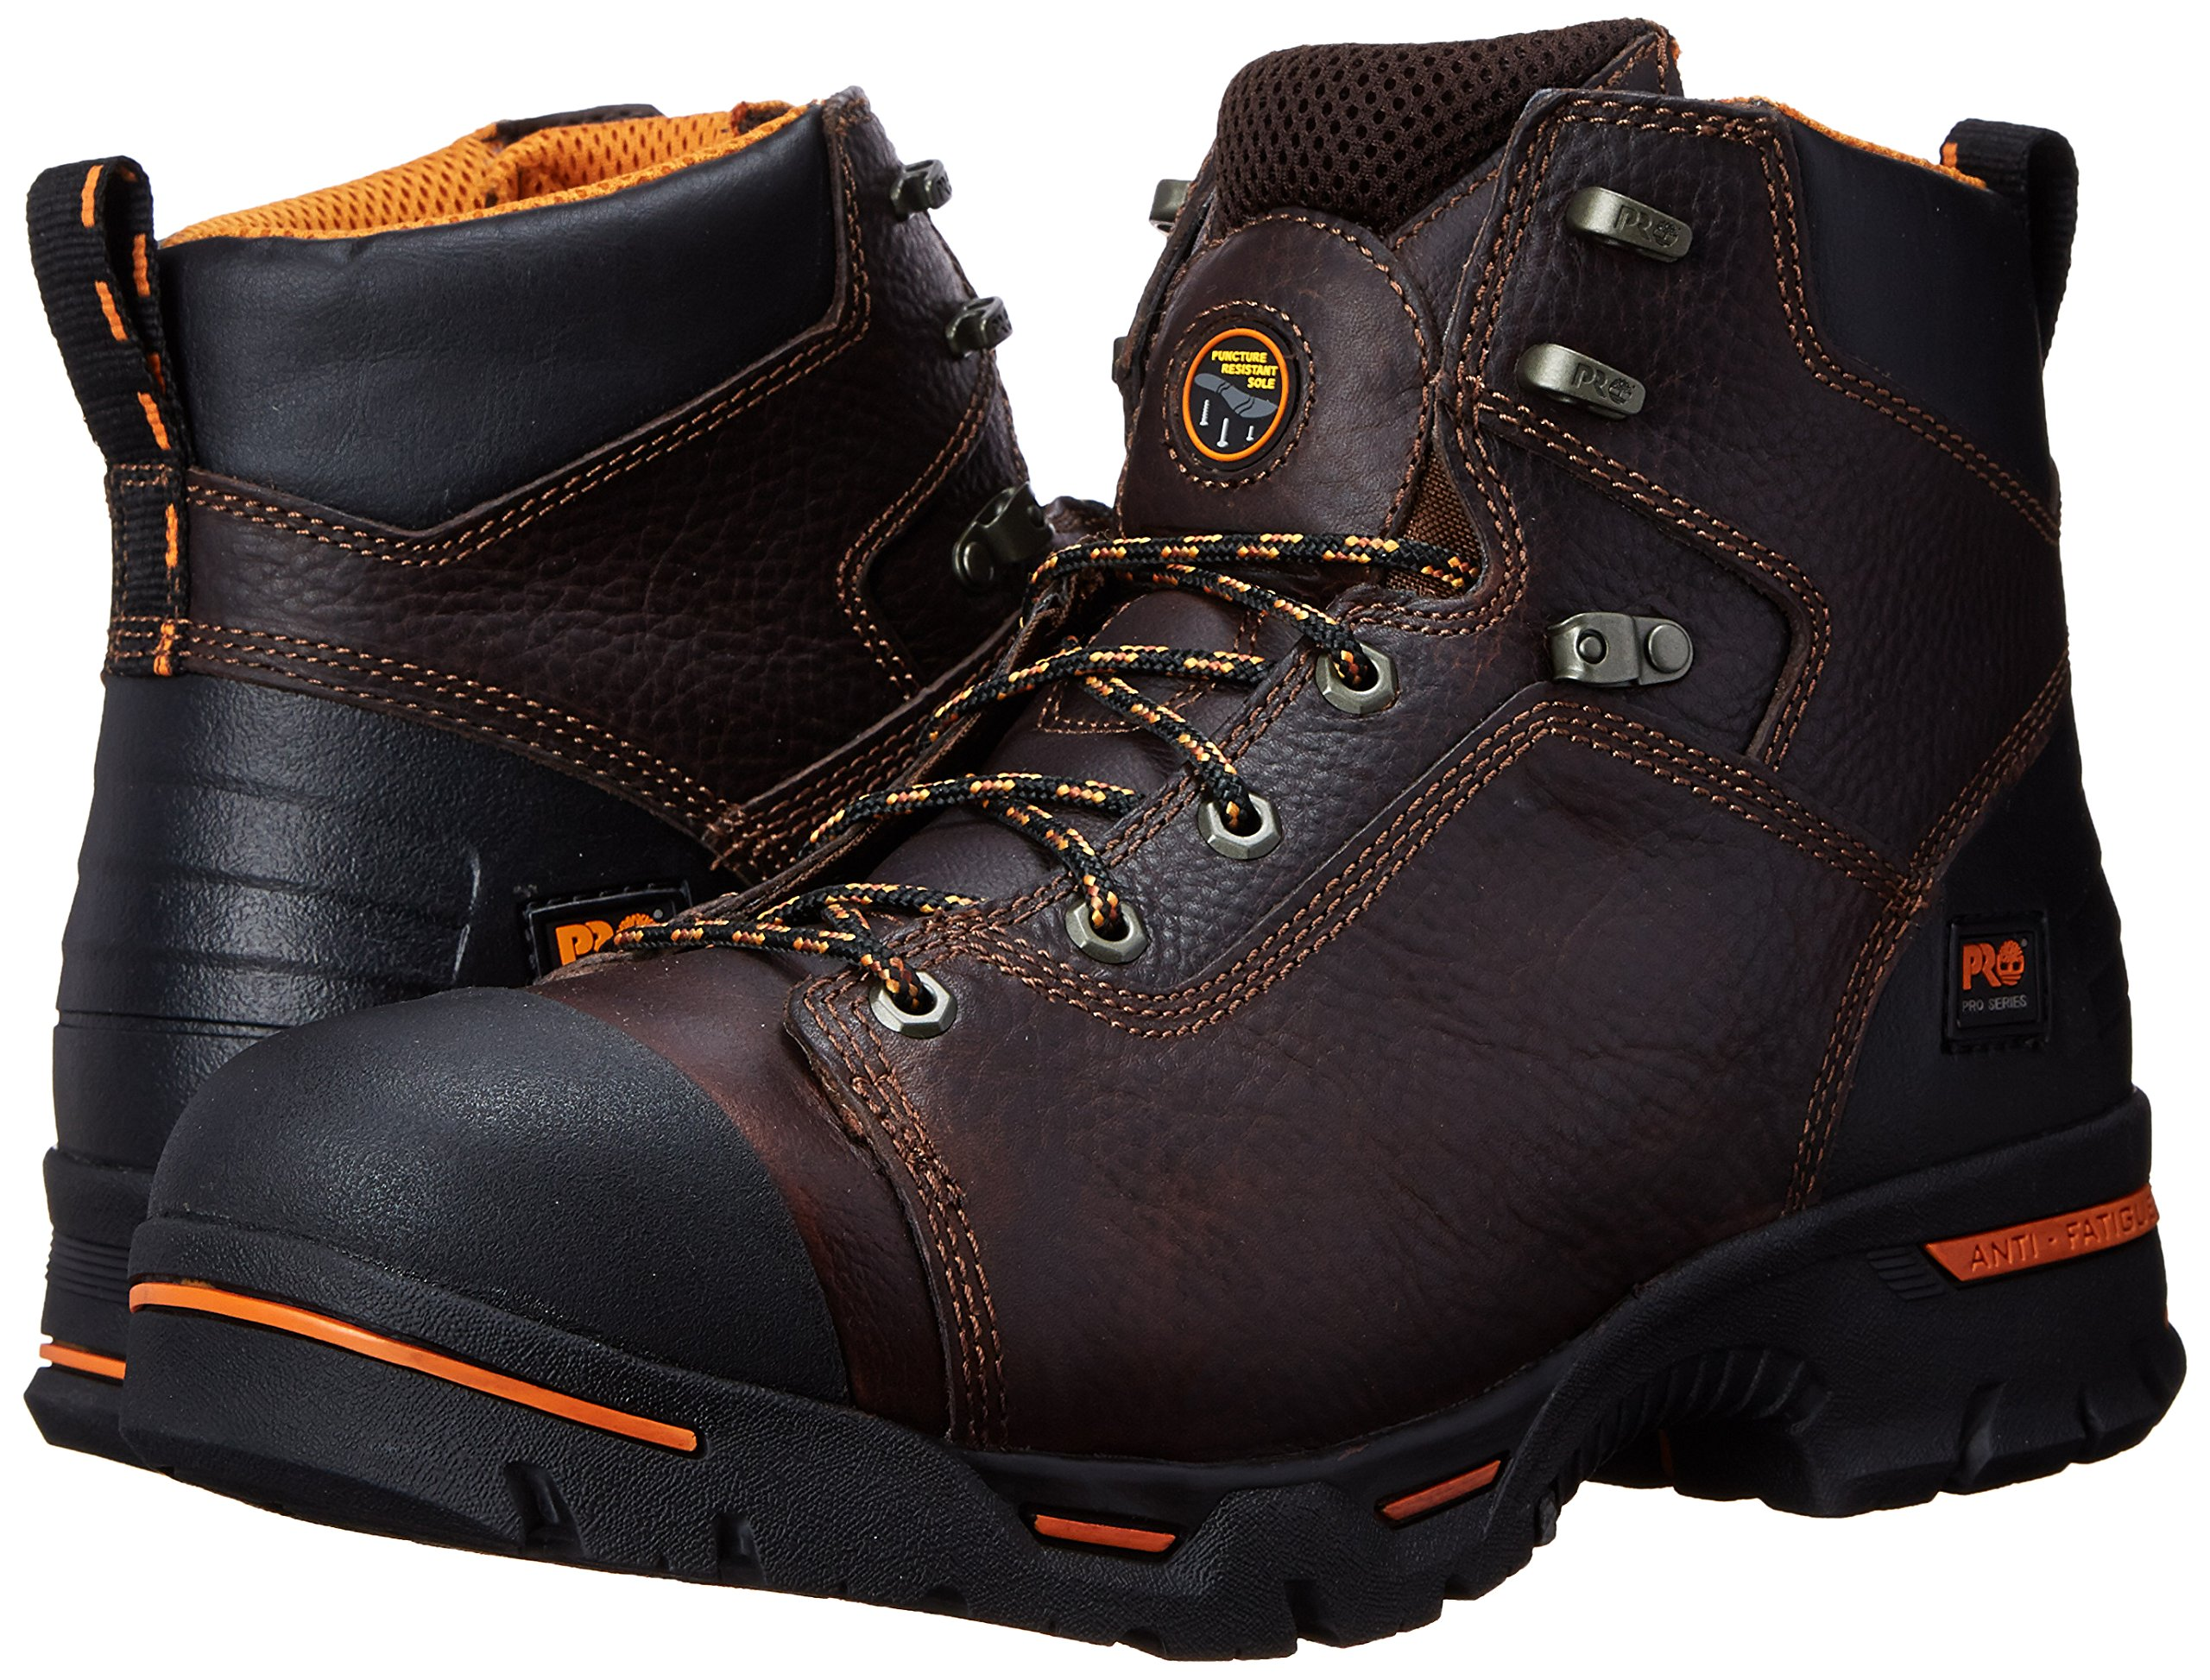 Timberland PRO Men's Endurance 6-Inch Soft Toe BR Work Boot,Briar,9.5 W US by Timberland PRO (Image #6)